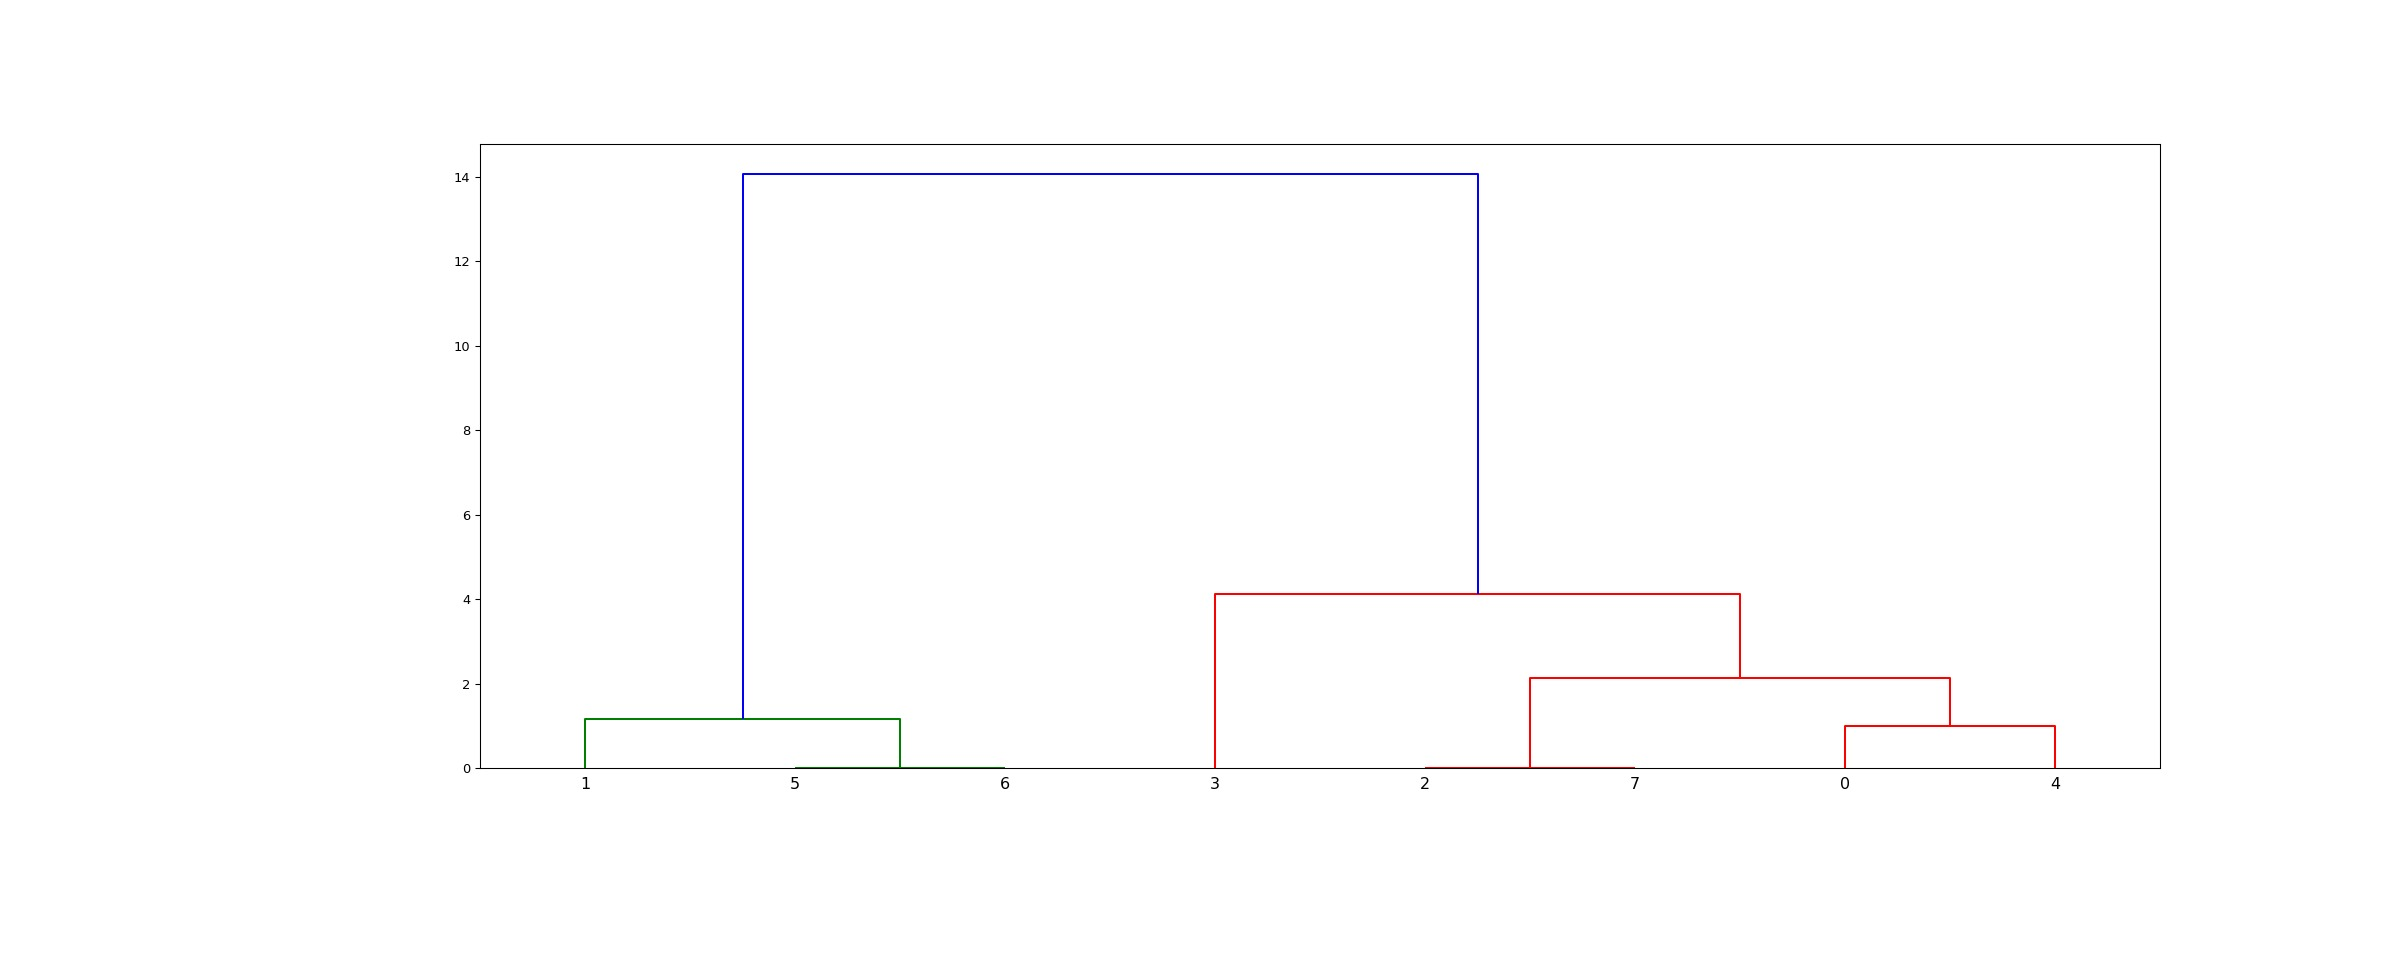 ../_images/scipy-cluster-hierarchy-linkage-1_00.png